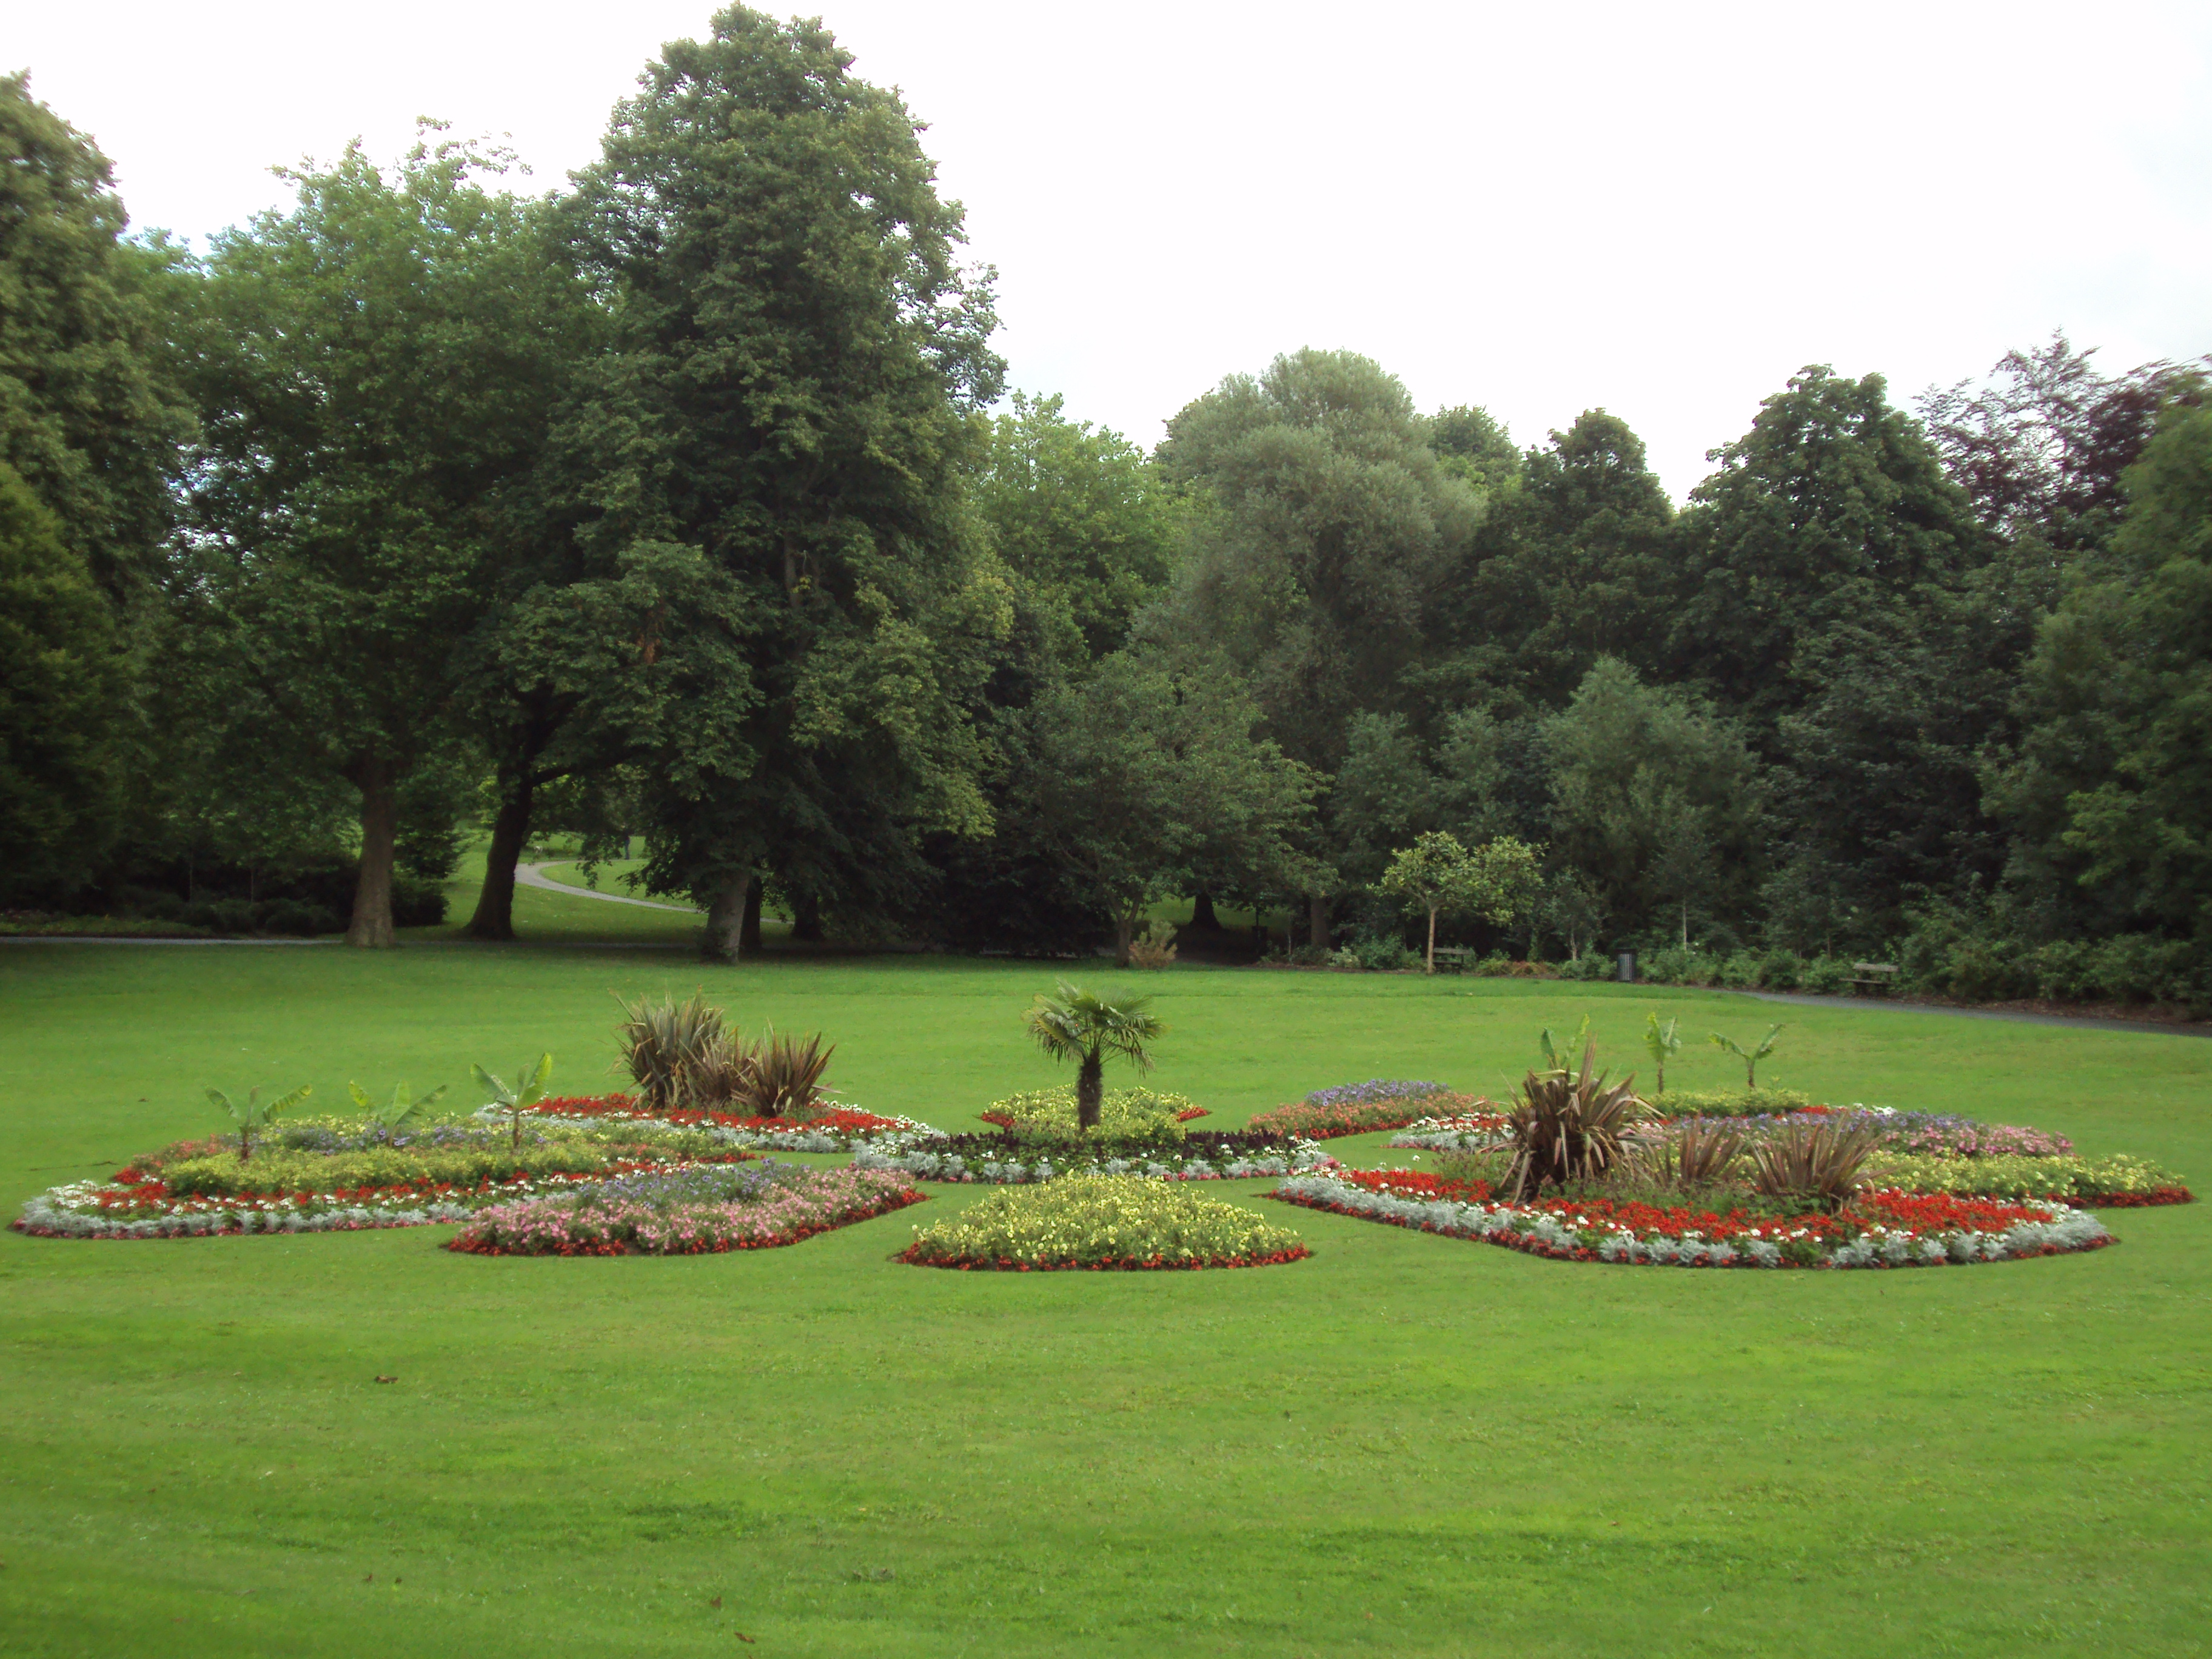 File:Roundhay Park, Le...